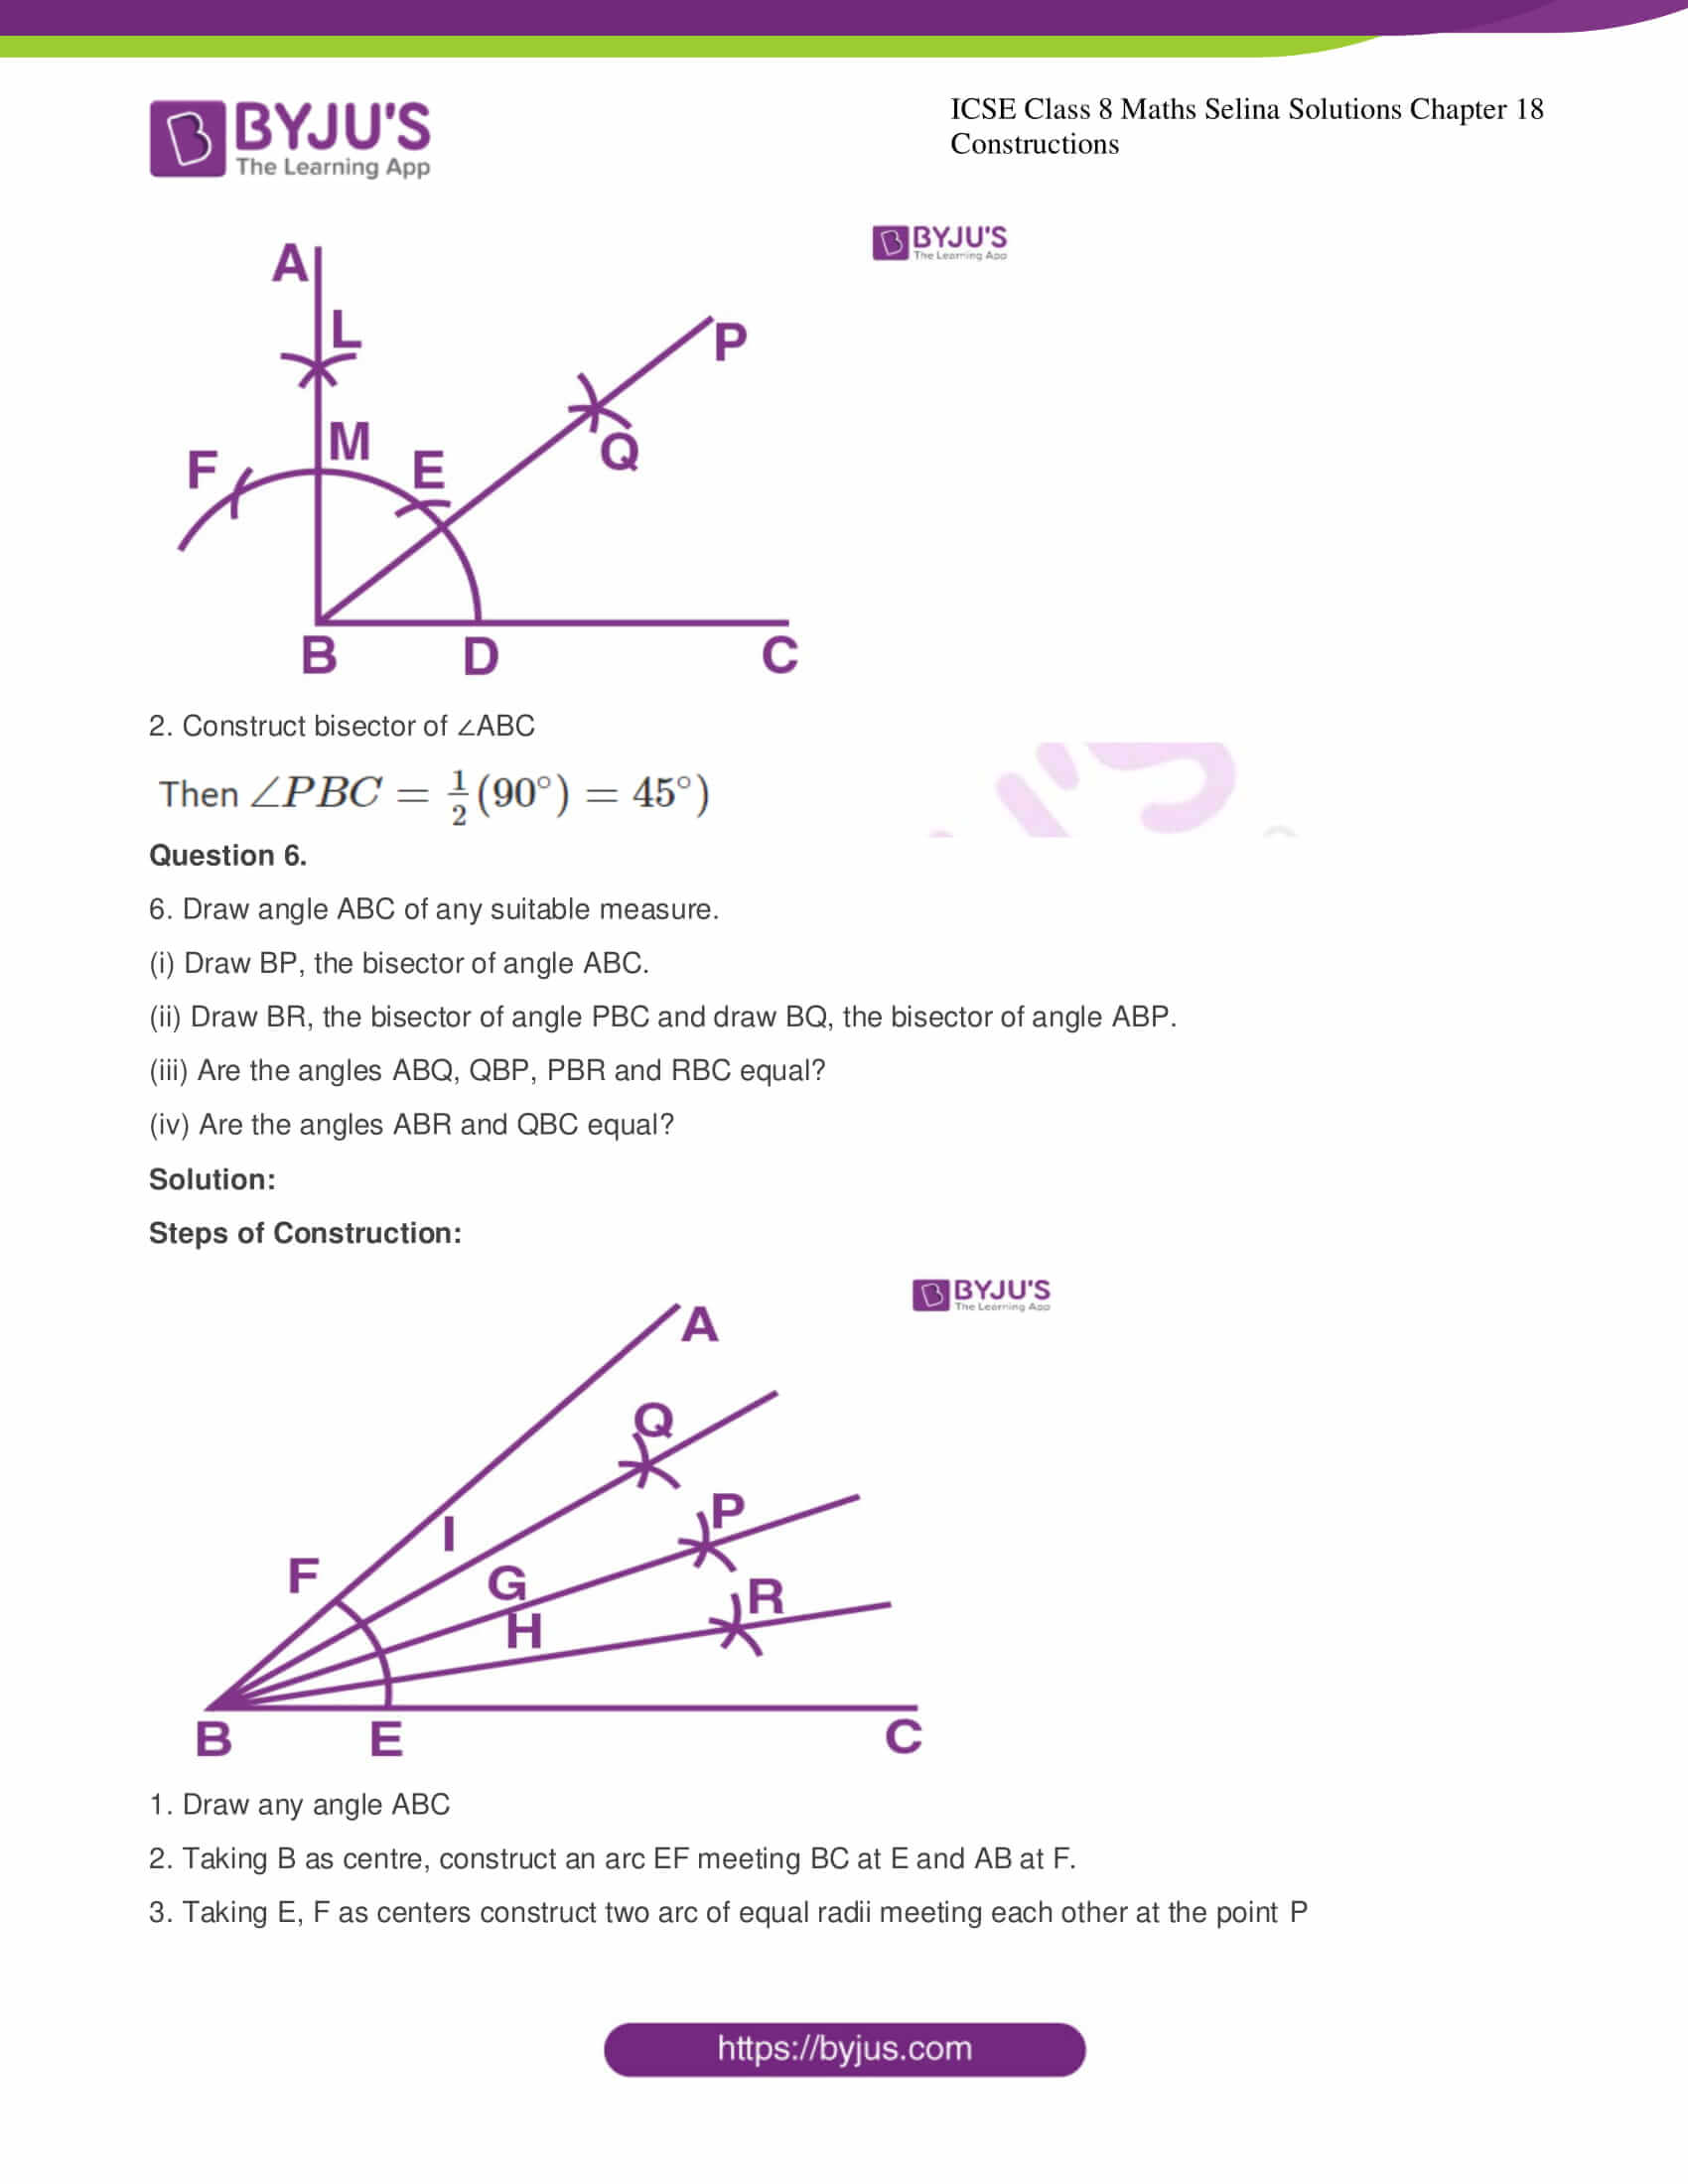 icse class 8 maths may3 selina solutions chapter 18 constructions 08